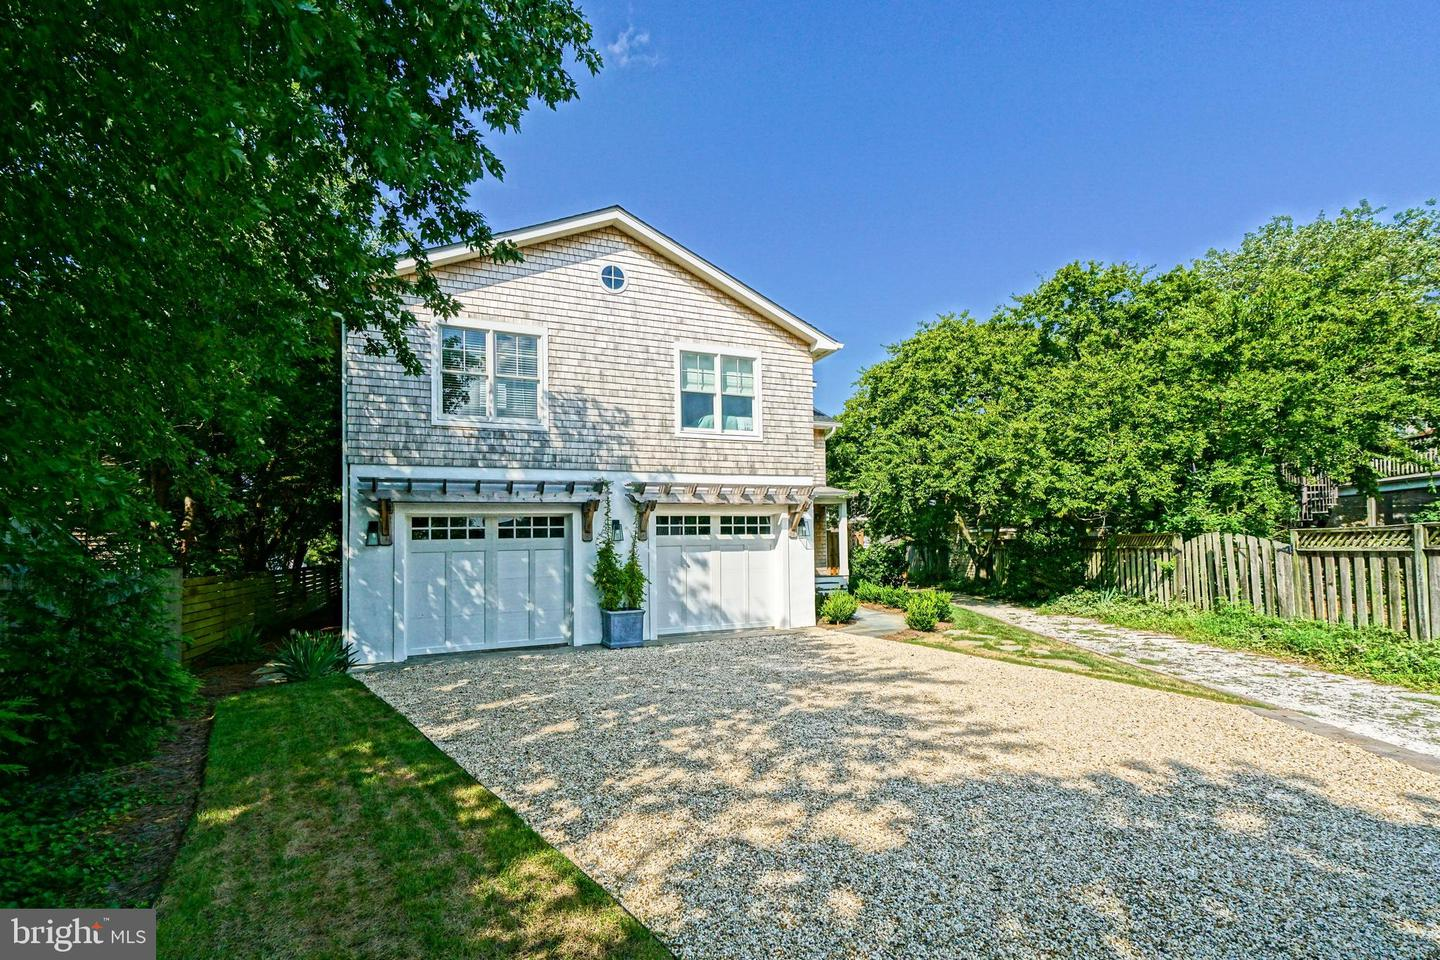 DESU168356-304281455737-2020-11-14-13-42-26 211 Bay Ave | Lewes, DE Real Estate For Sale | MLS# Desu168356  - Lee Ann Group